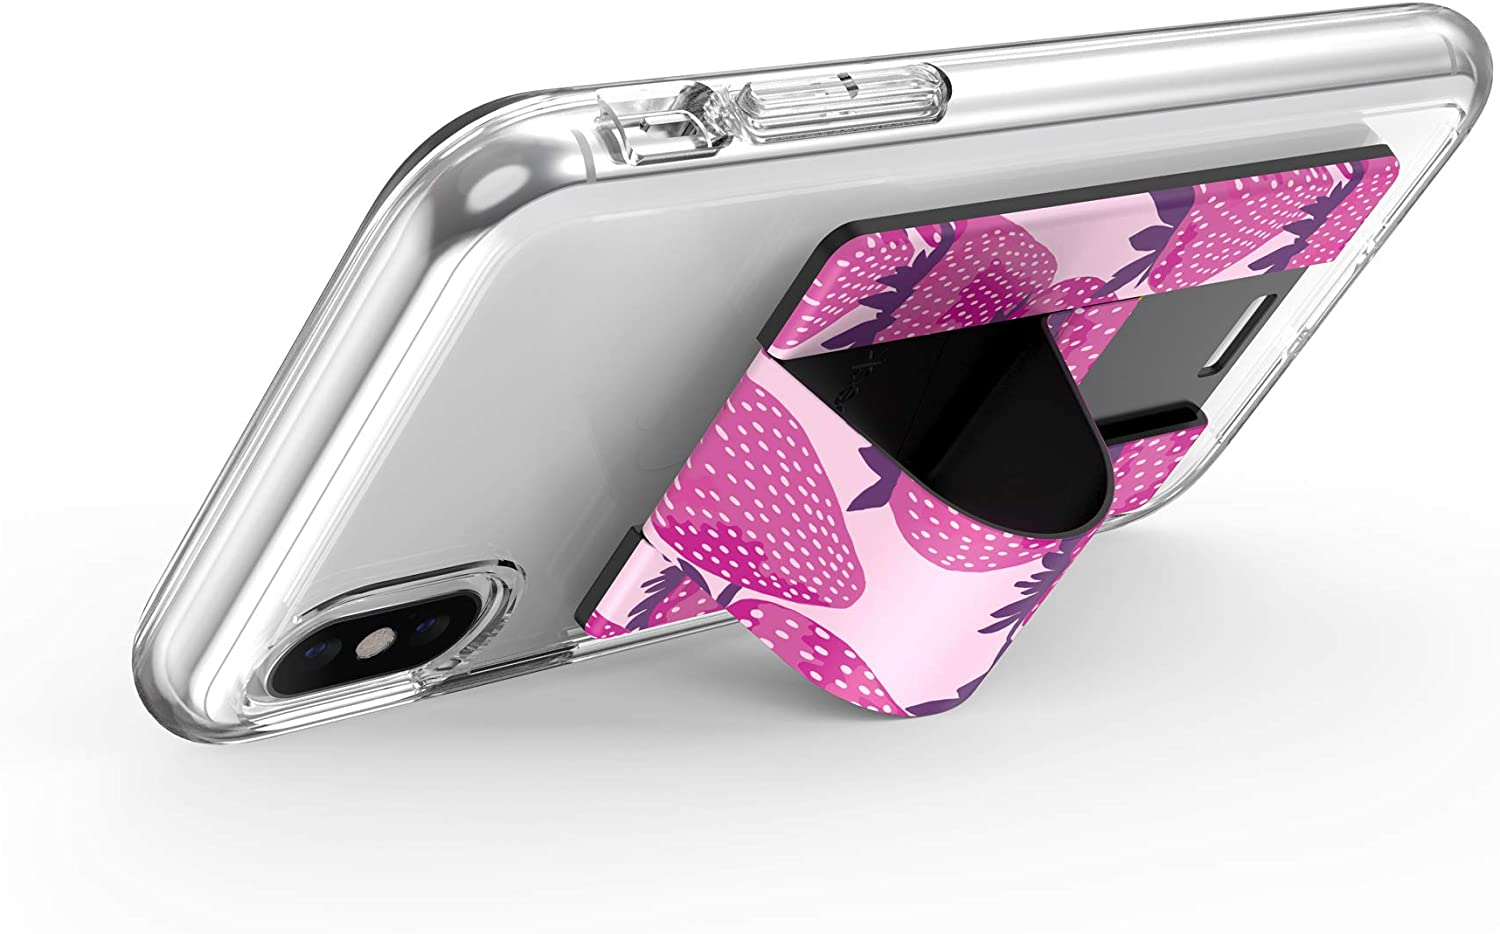 Cases Speck Products GrabTab Cell Phone Holder and Stand Works With Most Cell Phones TGIFriday Black